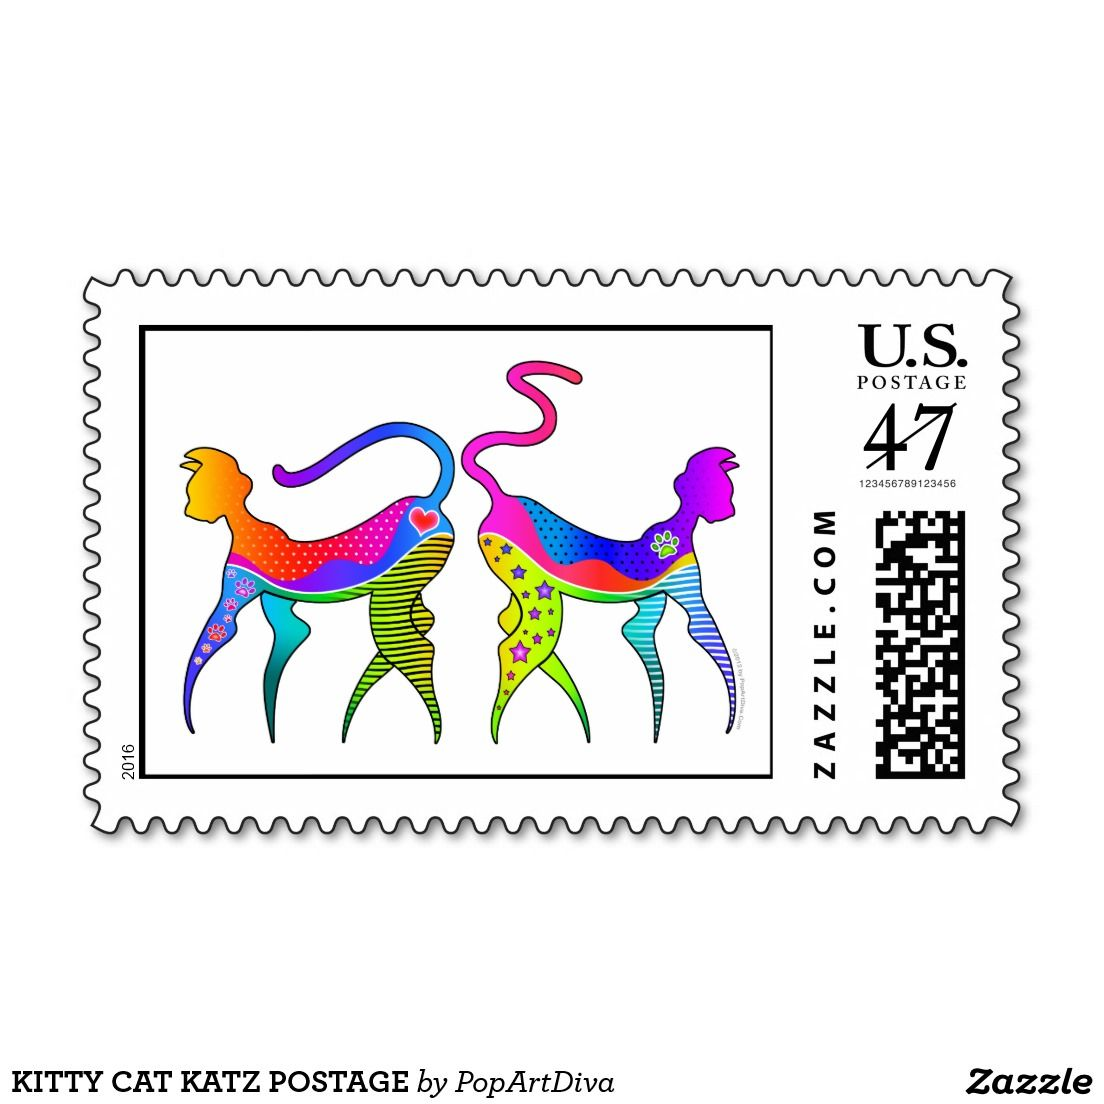 KITTY CAT KATZ POSTAGE